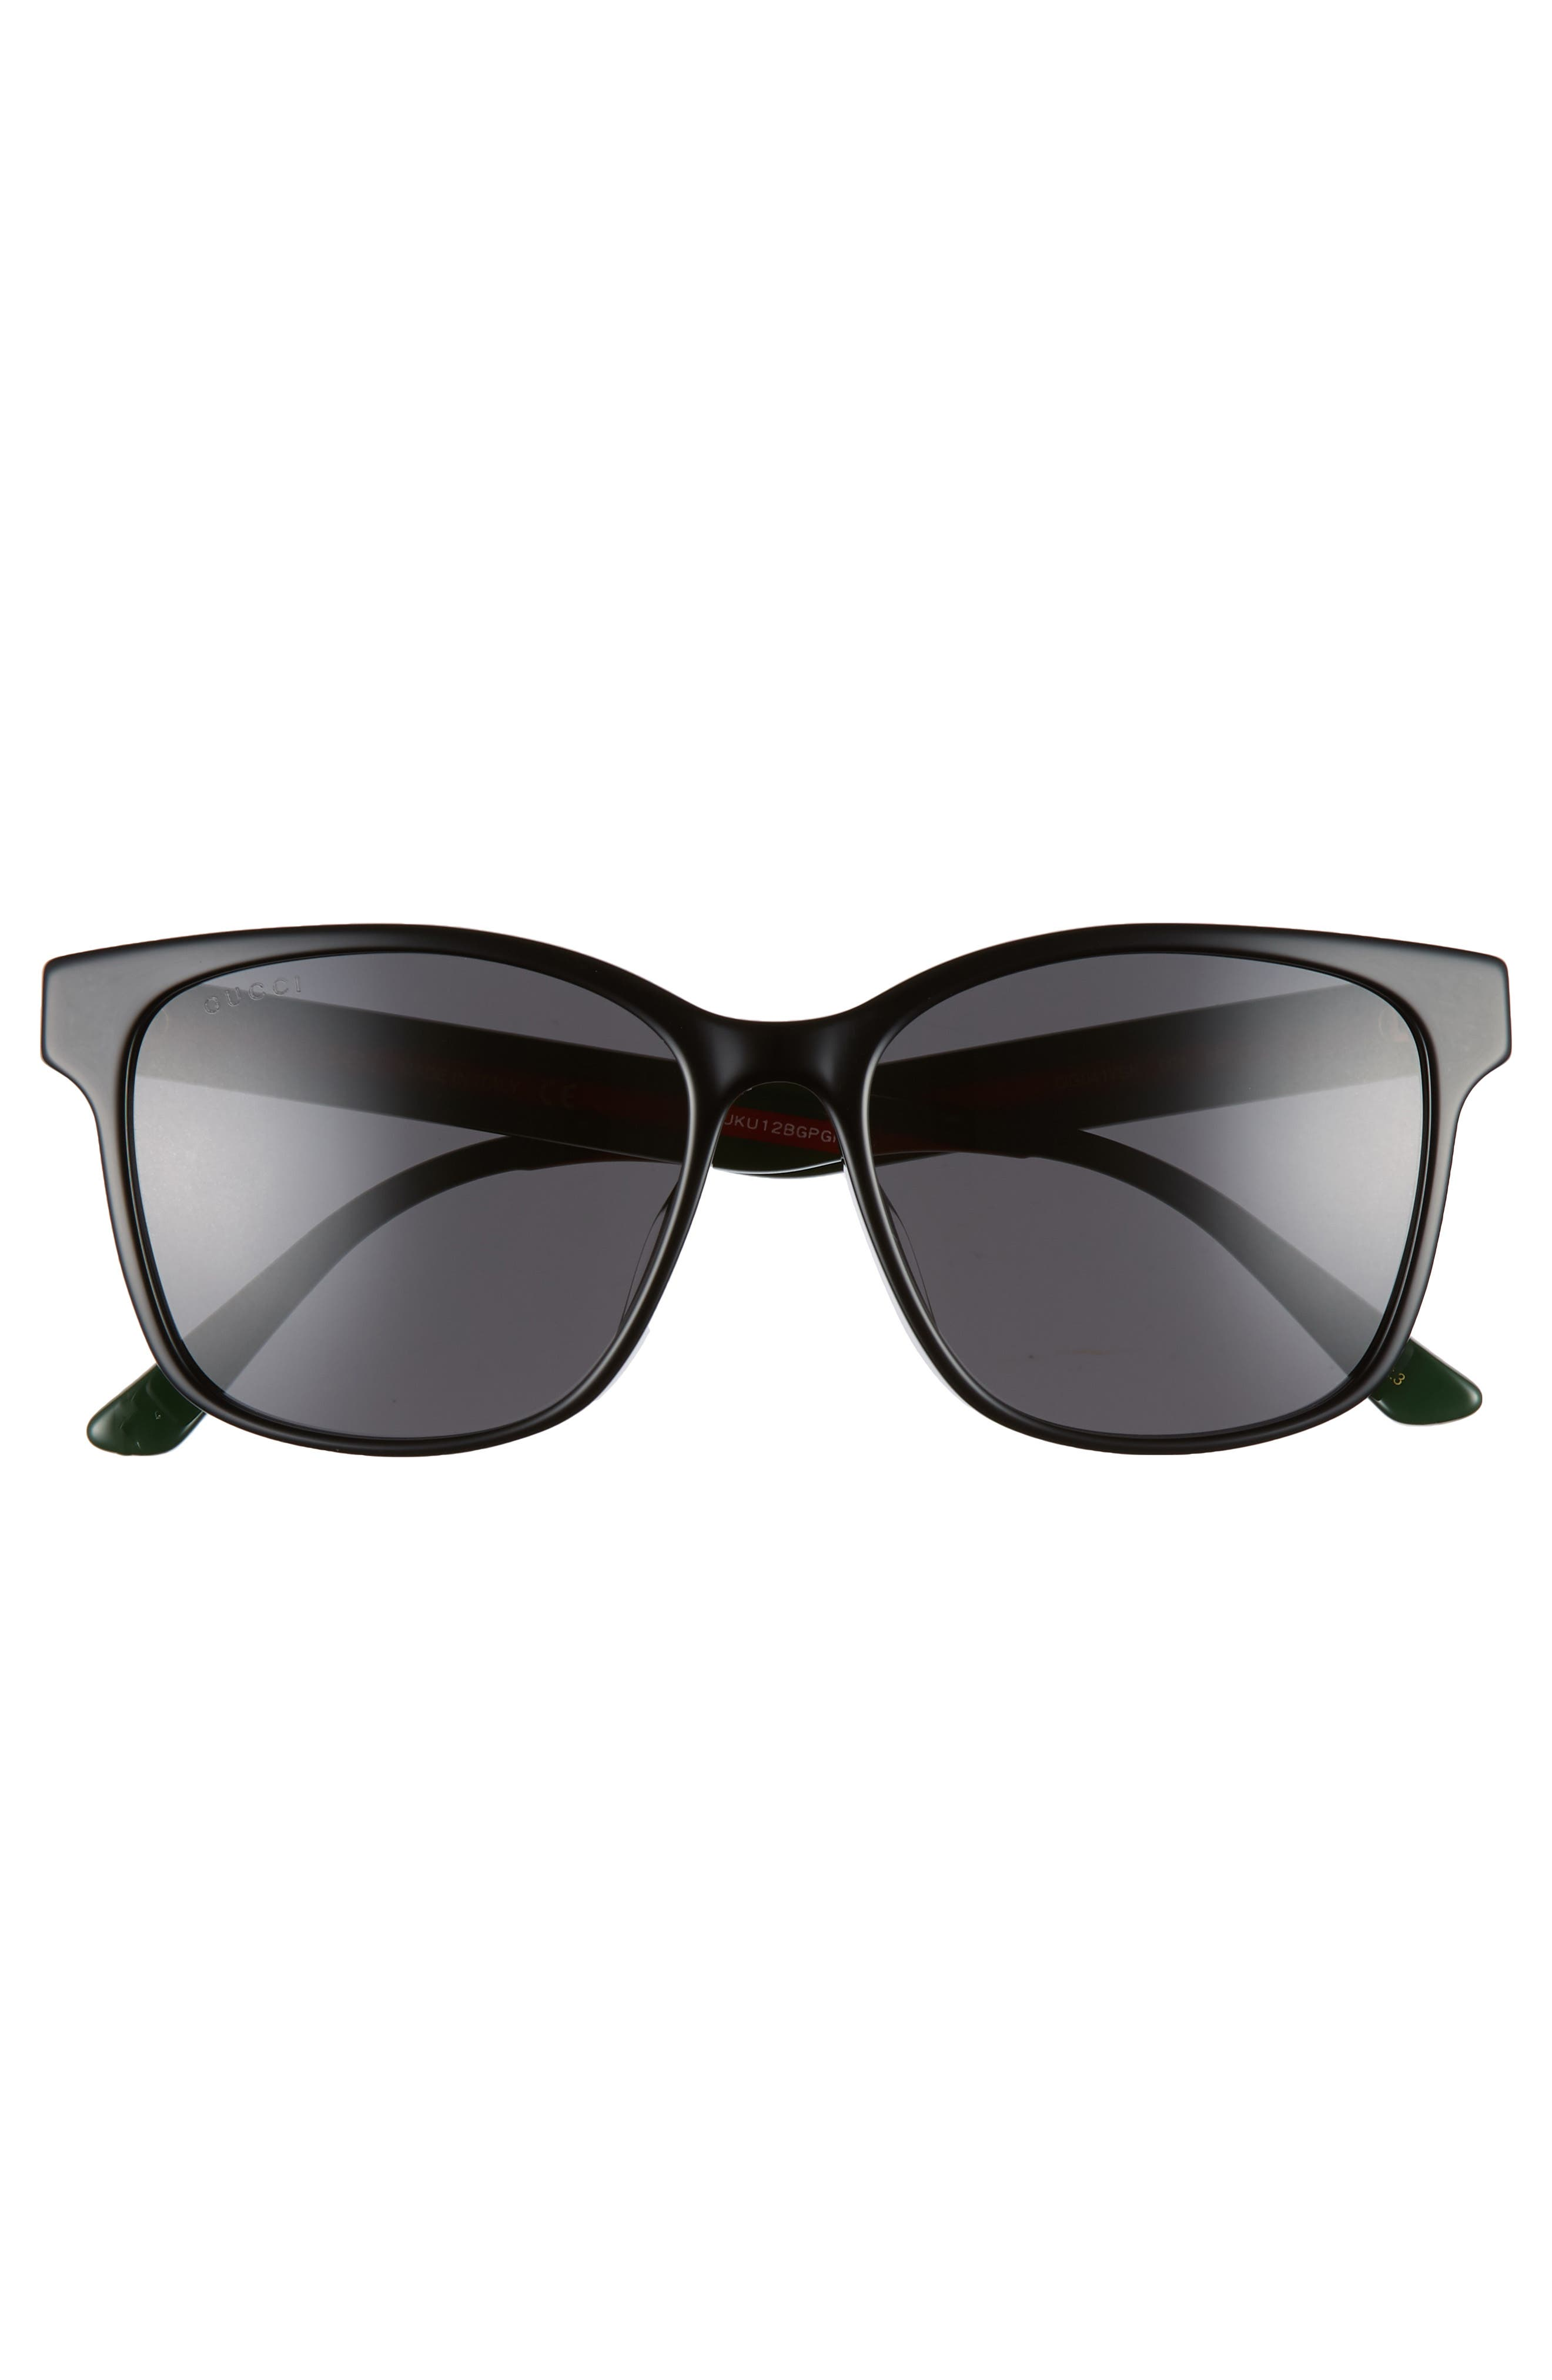 56mm Sunglasses,                             Alternate thumbnail 2, color,                             BLACK